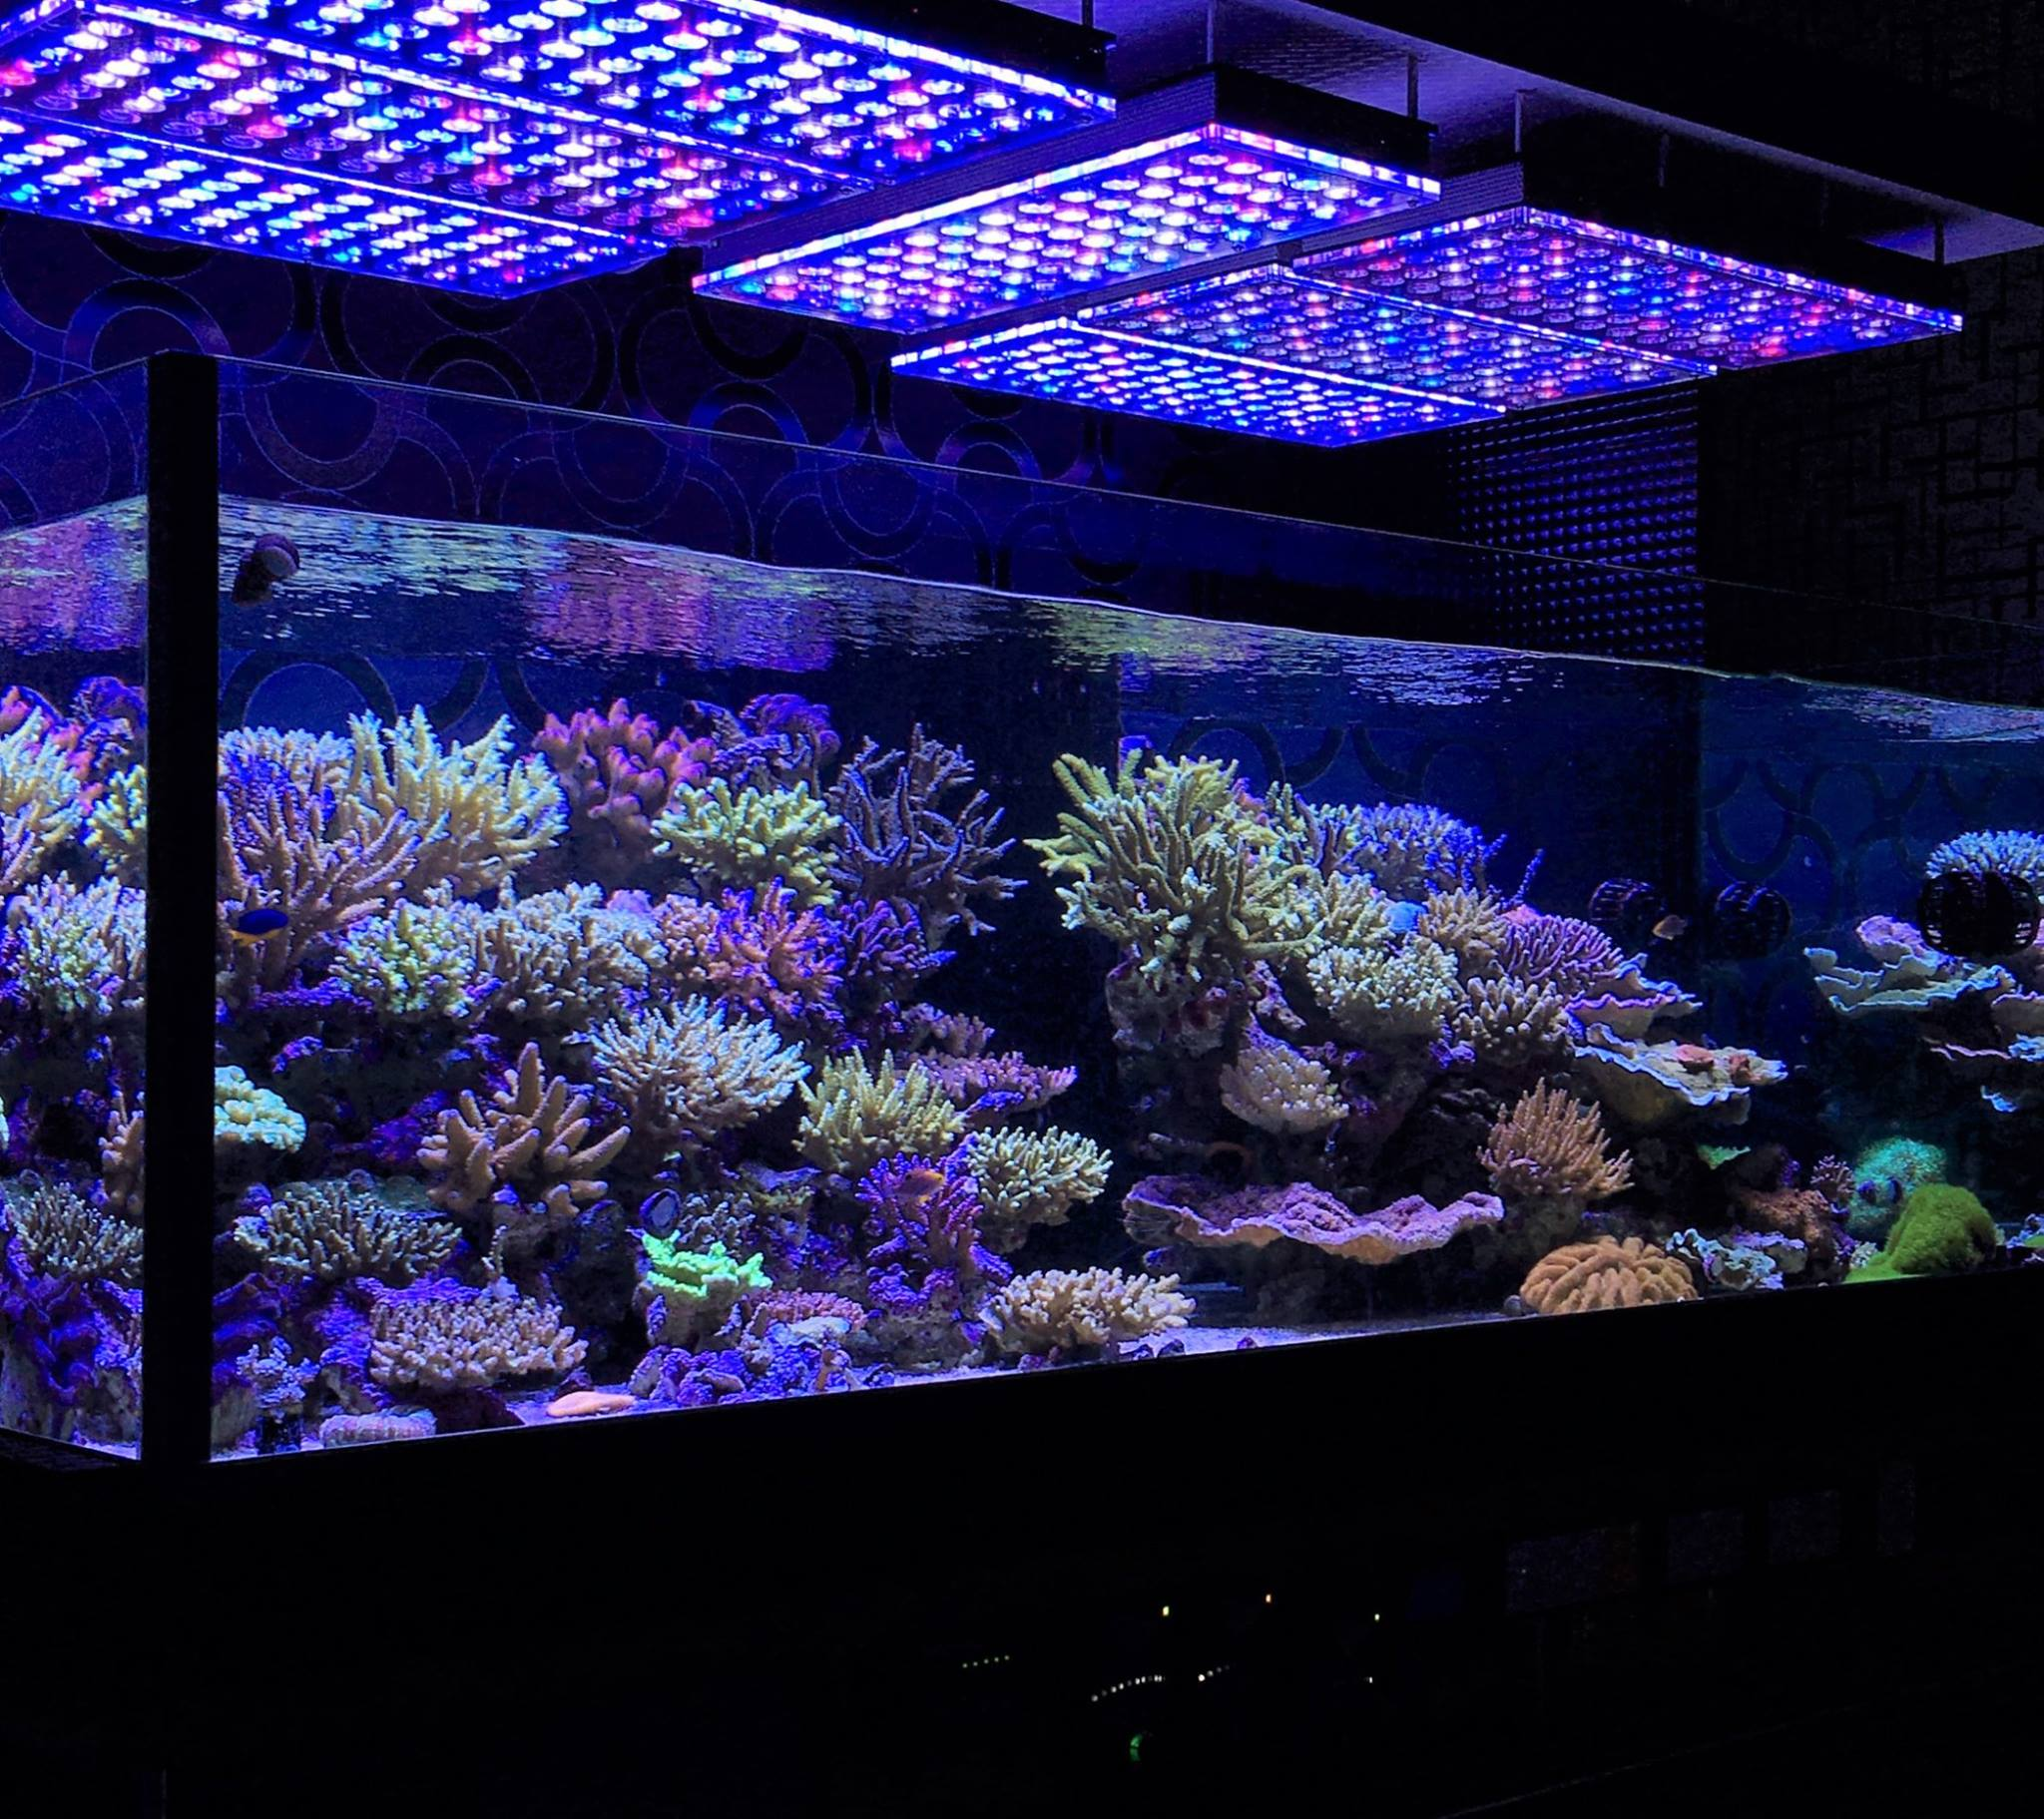 Pennsylvania Public Aquarium : Orphek Atlantik V3 Plus Tingenes internet Reef Aquarium LED Belysning